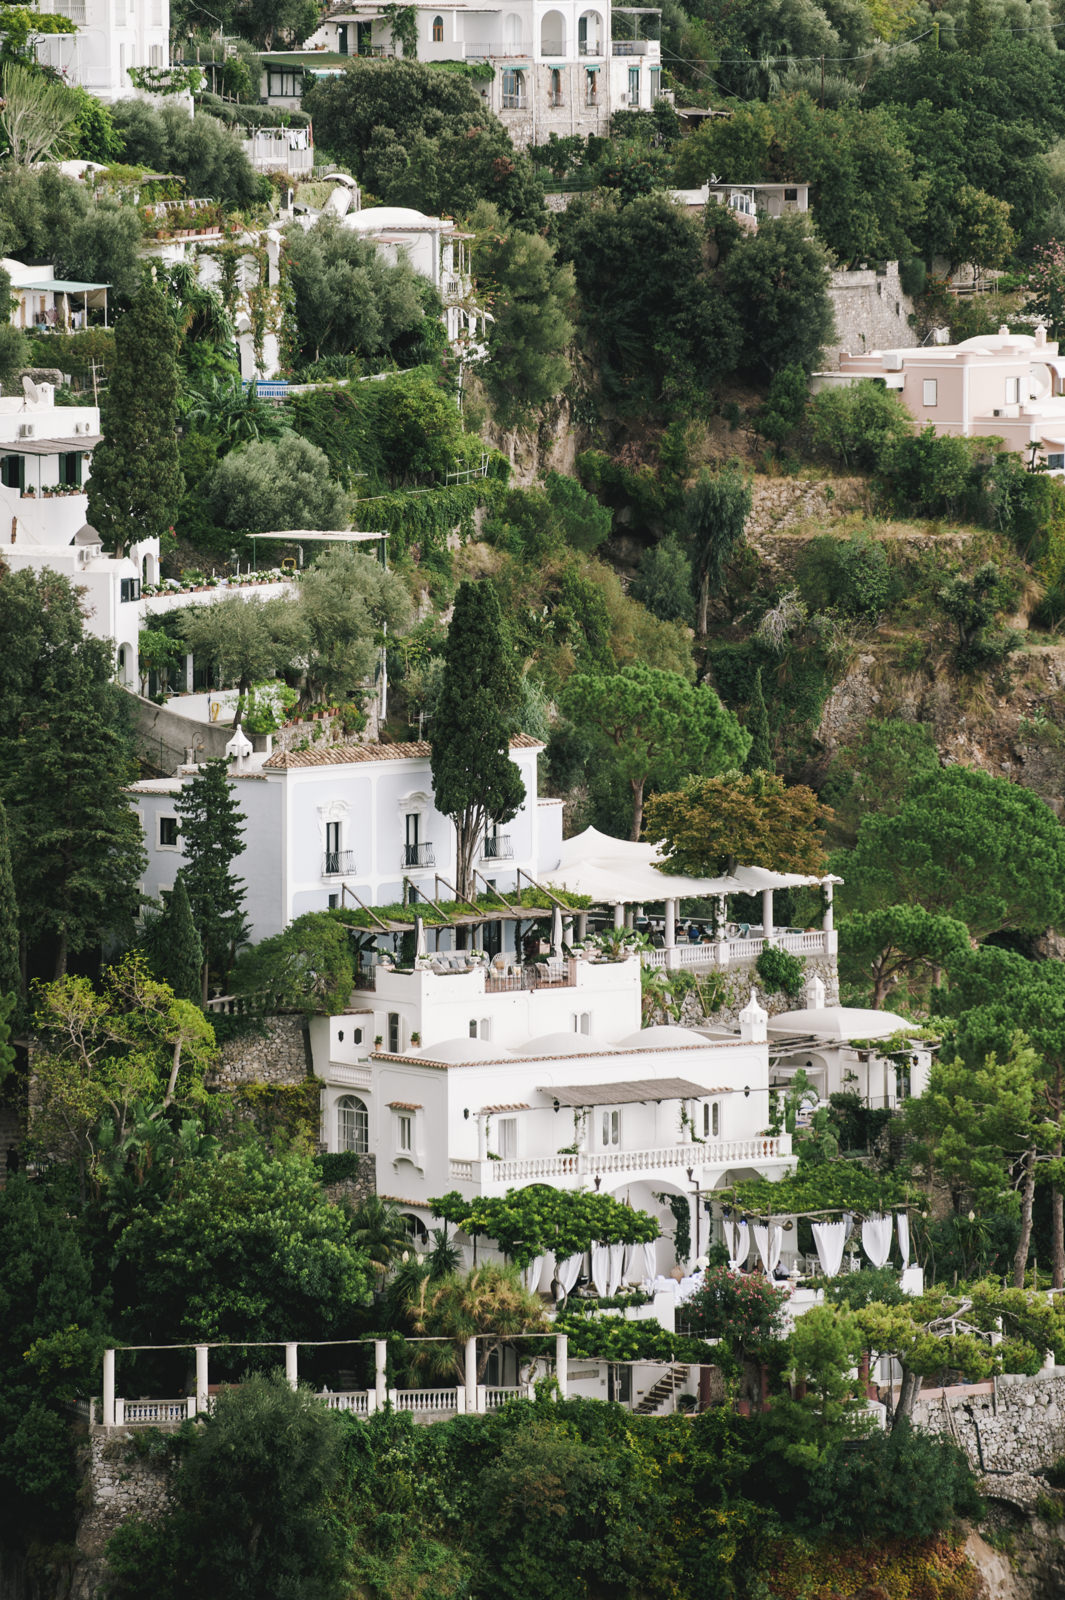 villa tre ville wedding location in positano